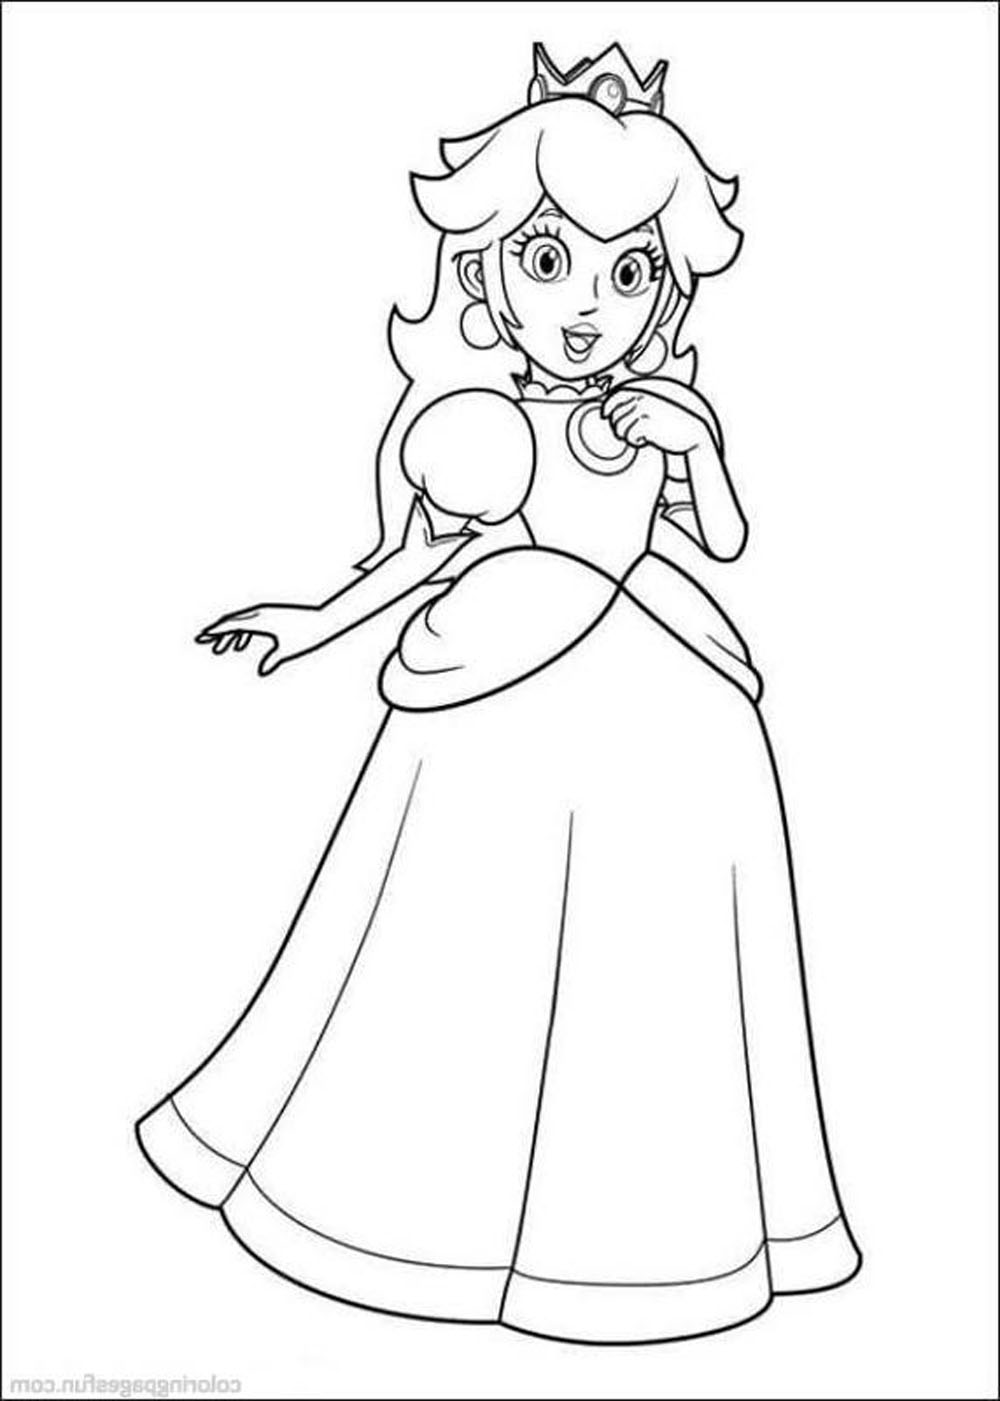 Print Download Mario Coloring Pages Themes Super Paper Page Free